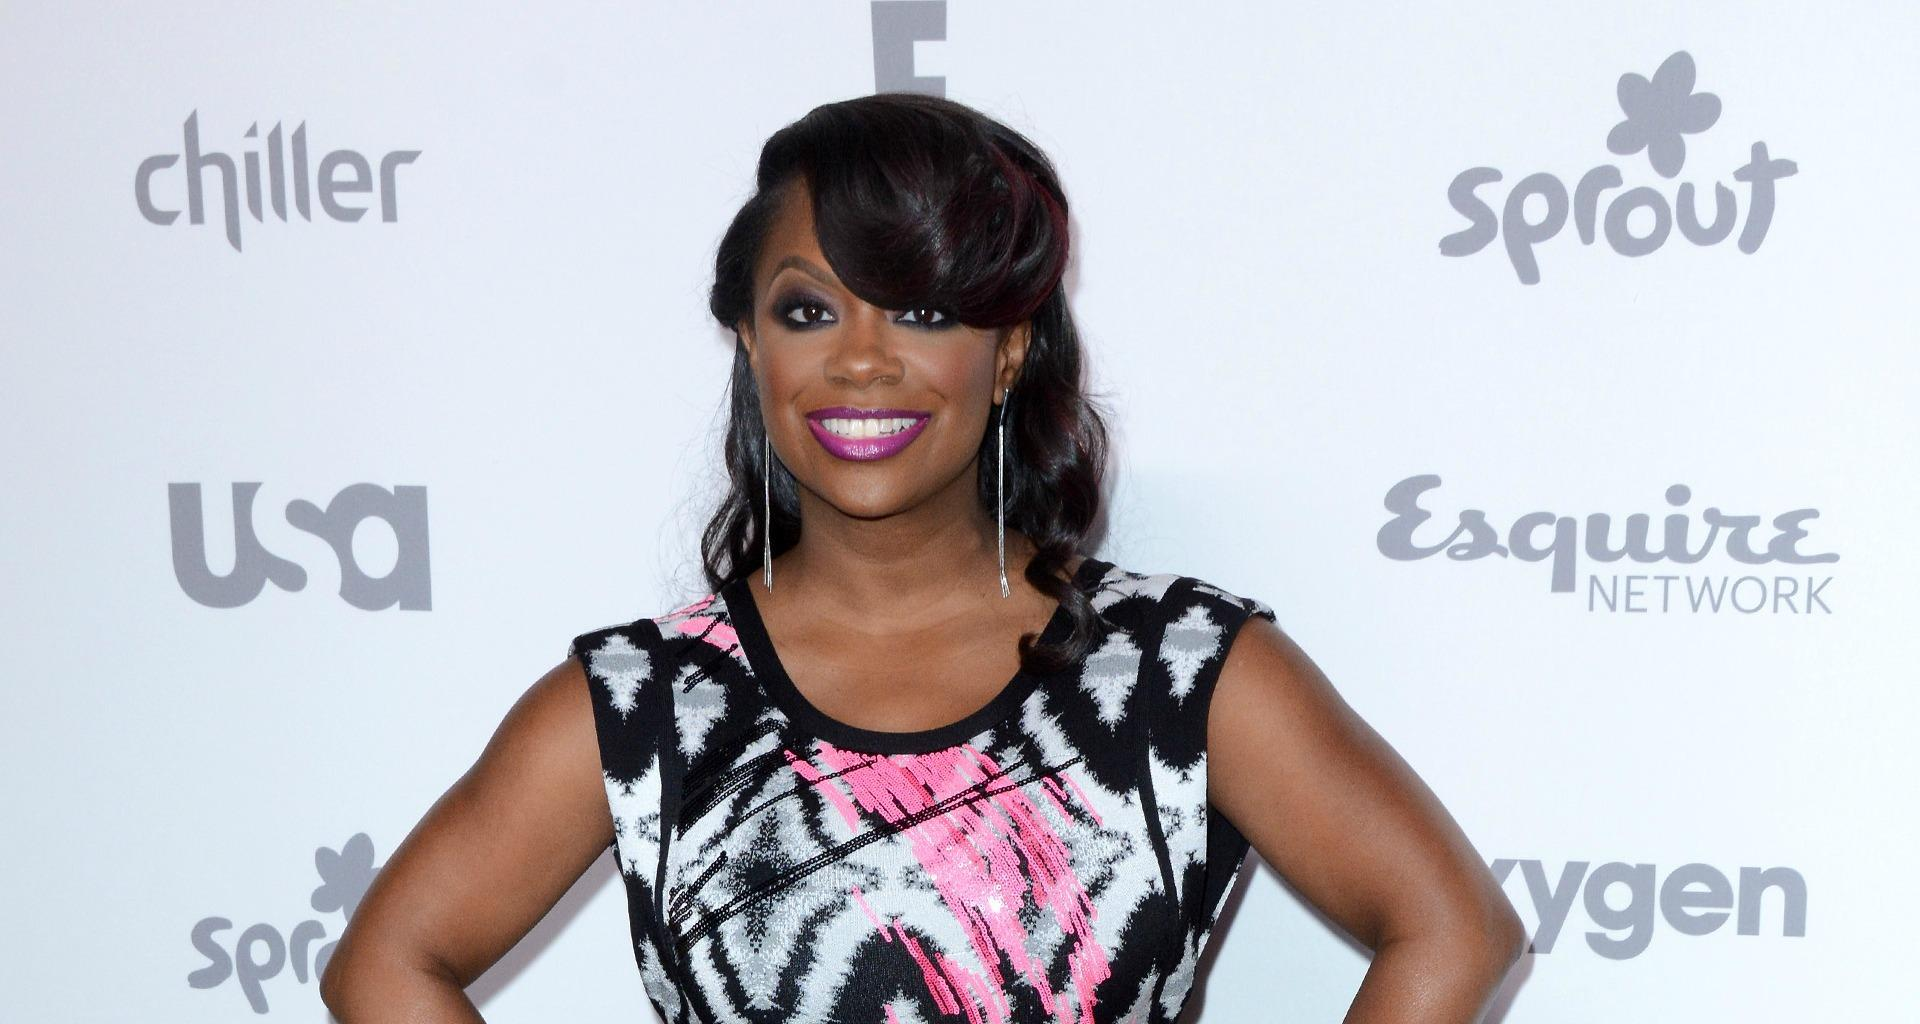 Kandi Burruss Is Glowing In Pink At An Important Event Where She Shared Helpful And Inspiring Knowledge - Fans Notice She Lost A Lot Of Weight